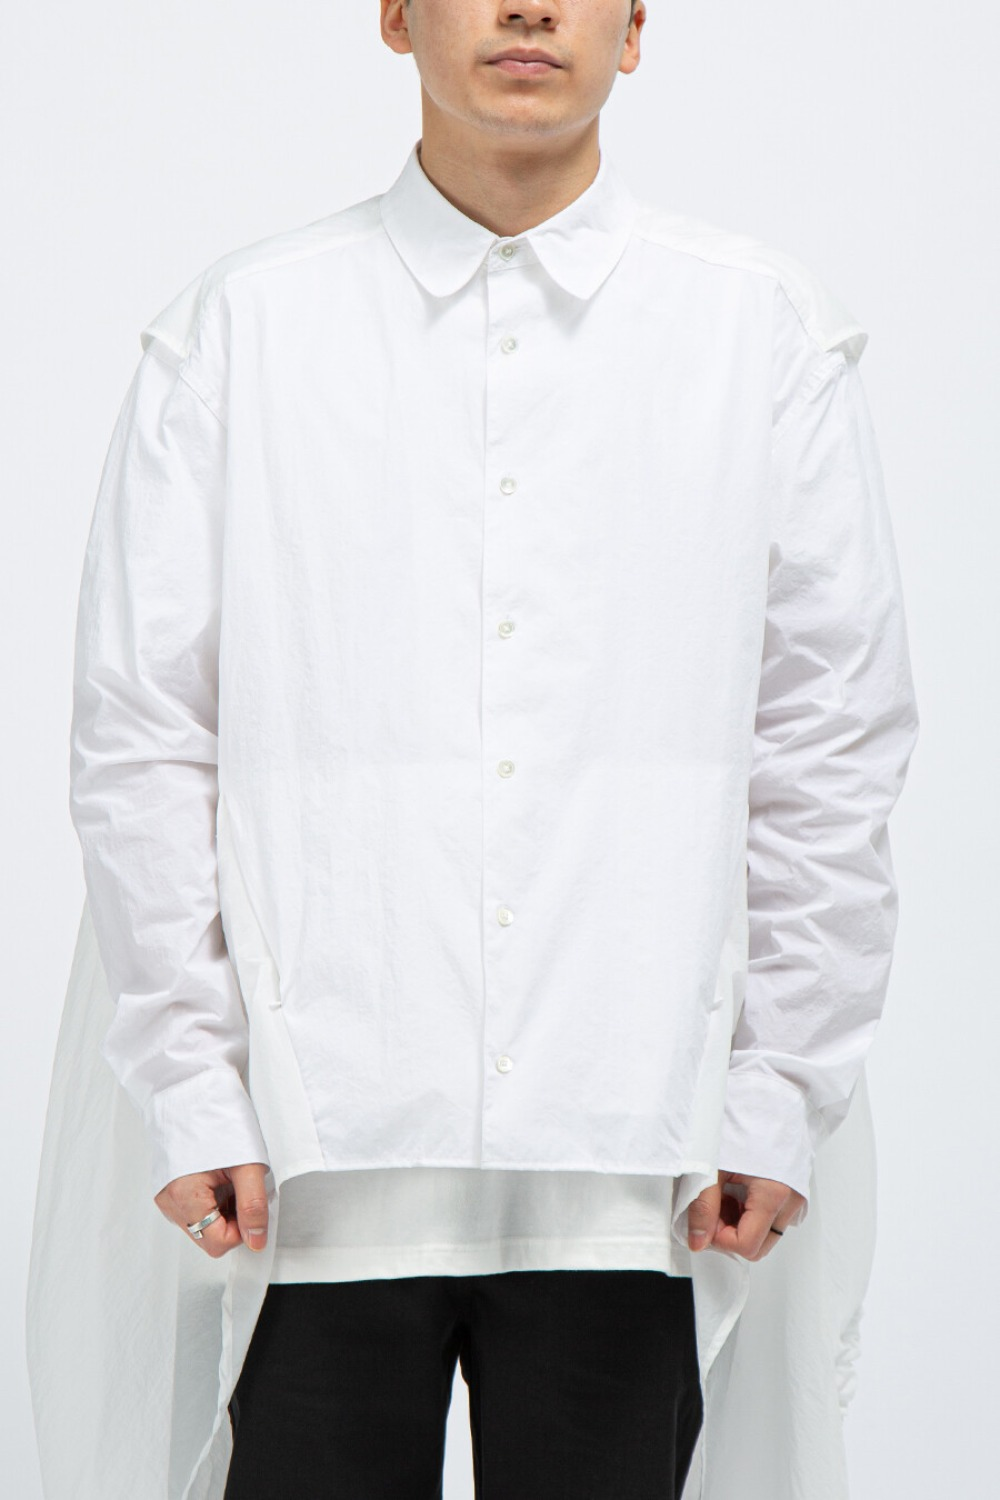 3.0 SHIRT CENTER WHITE